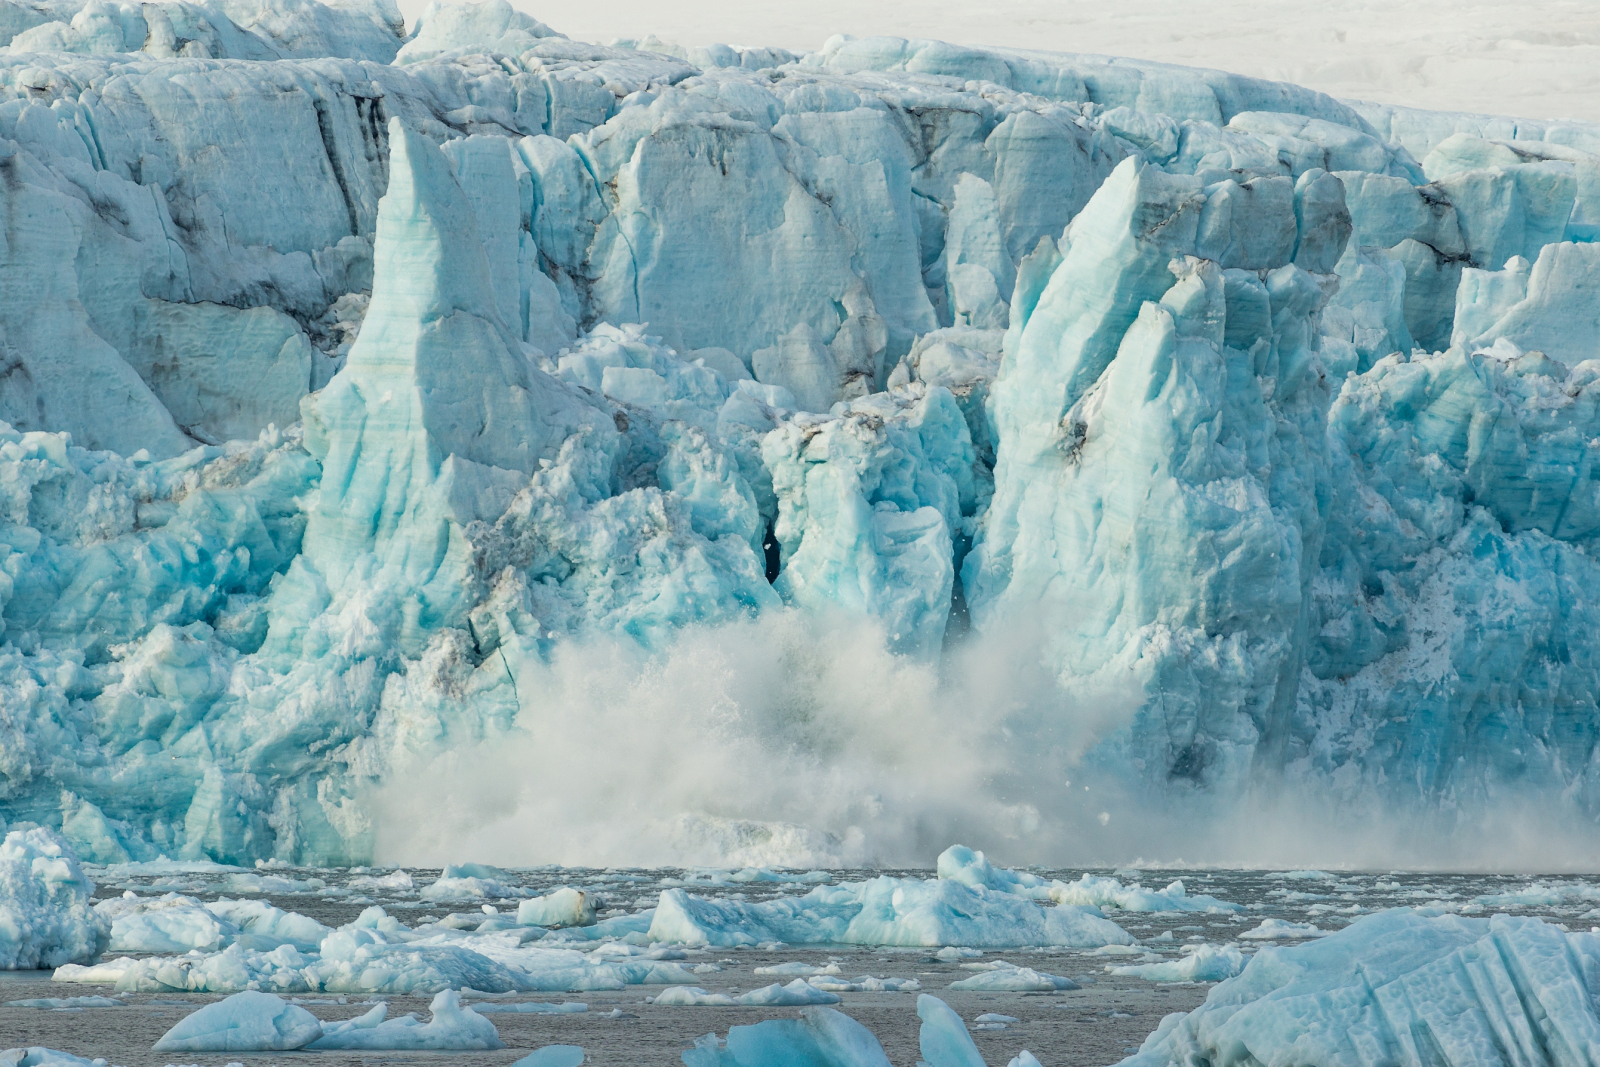 Oceans and glaciers bearing 'unprecedented' impact of climate change: IPCC